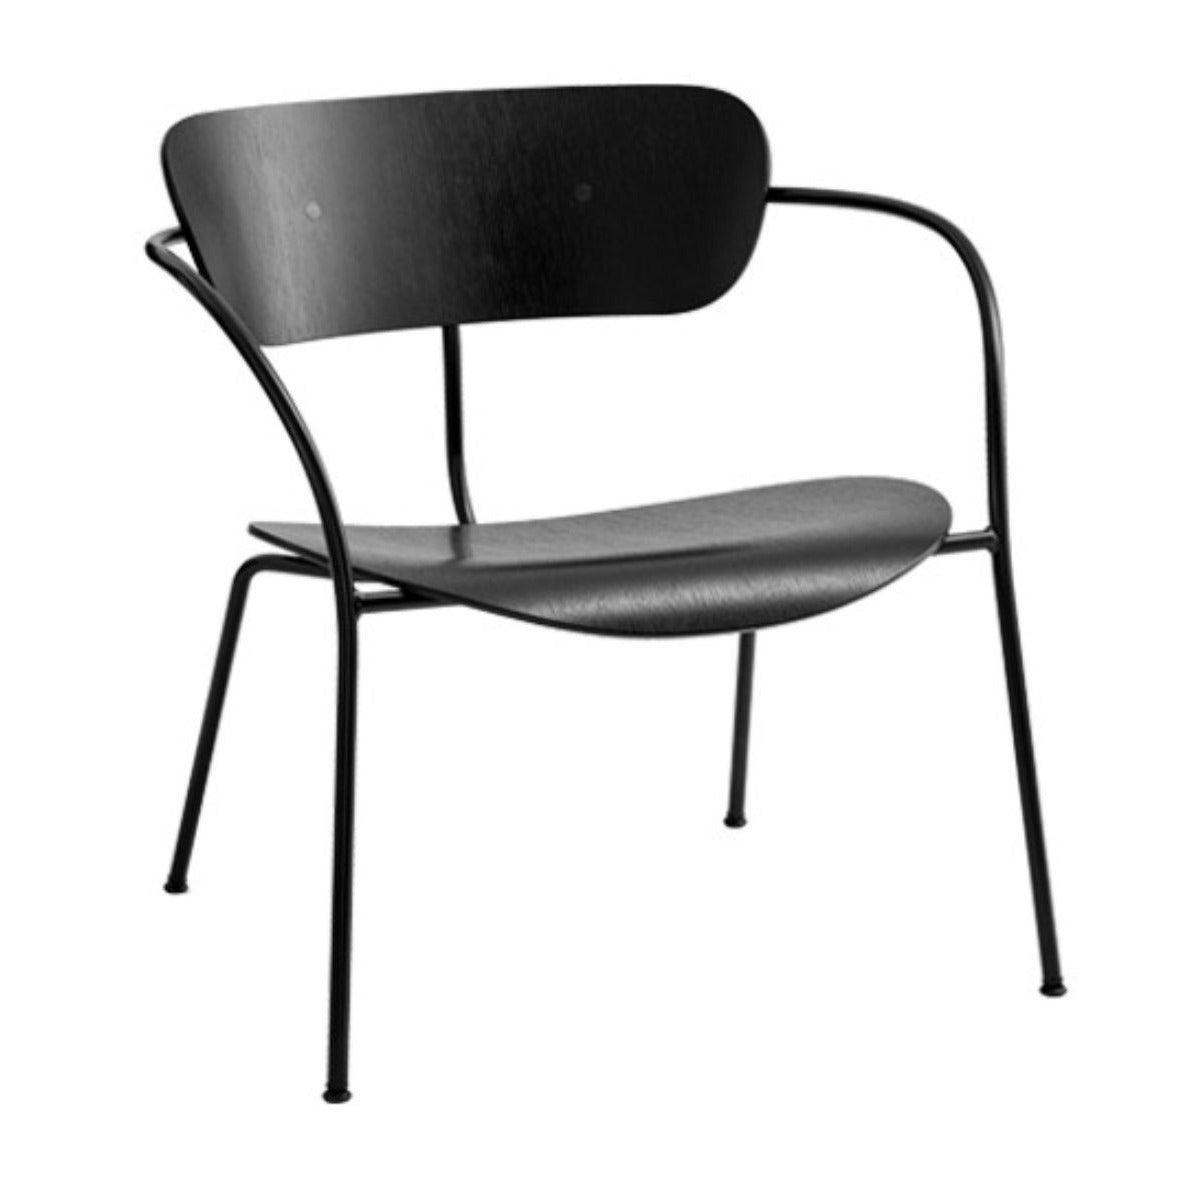 &Tradition AV5 Pavilion lounge chair